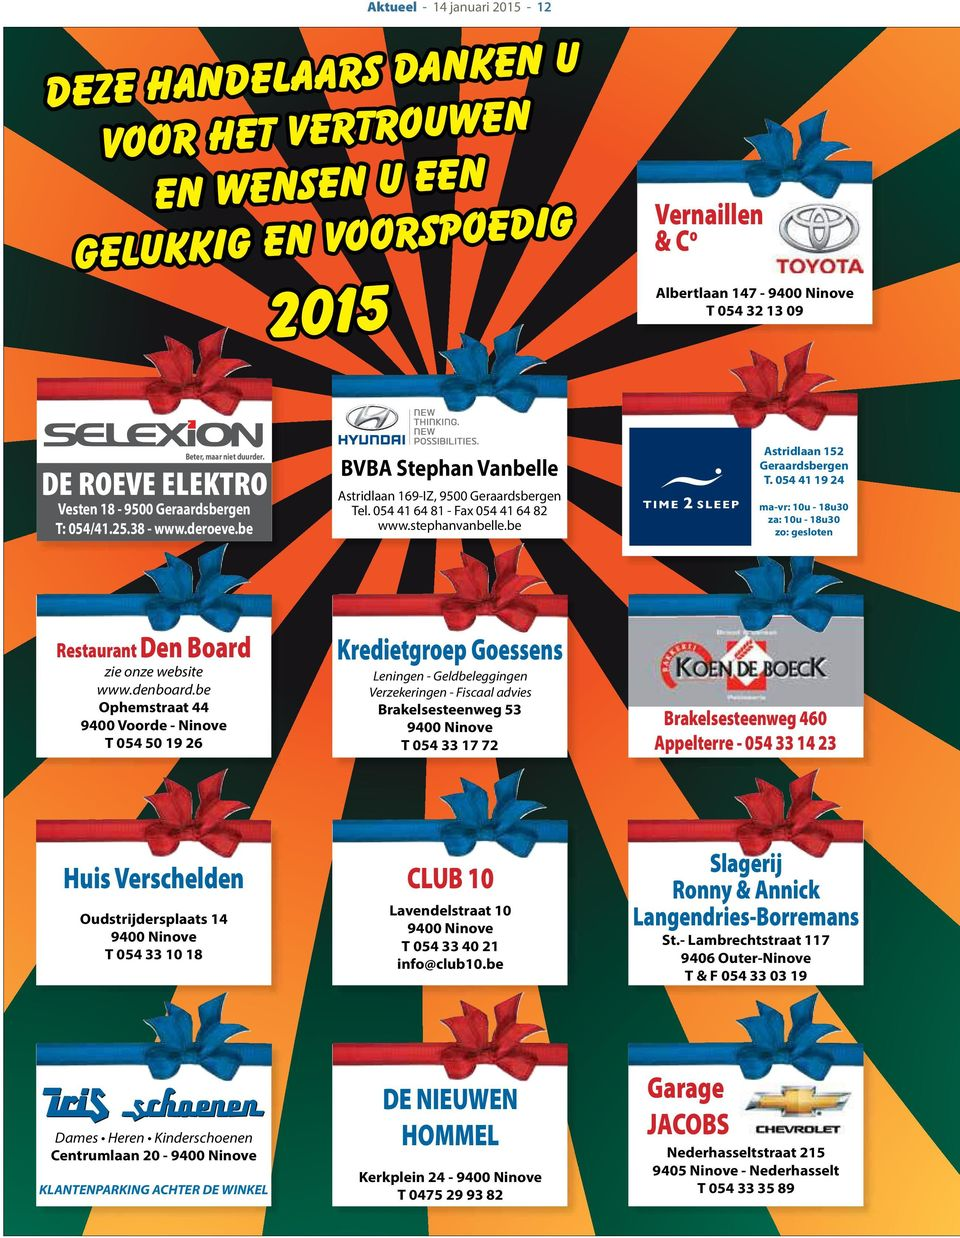 38 - www.deroeve.be winterac NIEUW in ons ASSORTIMENT 2015 * ASSE Gentsesteenweg 138 1730 Asse T. 02 452 86 75 asse@time2sleep.